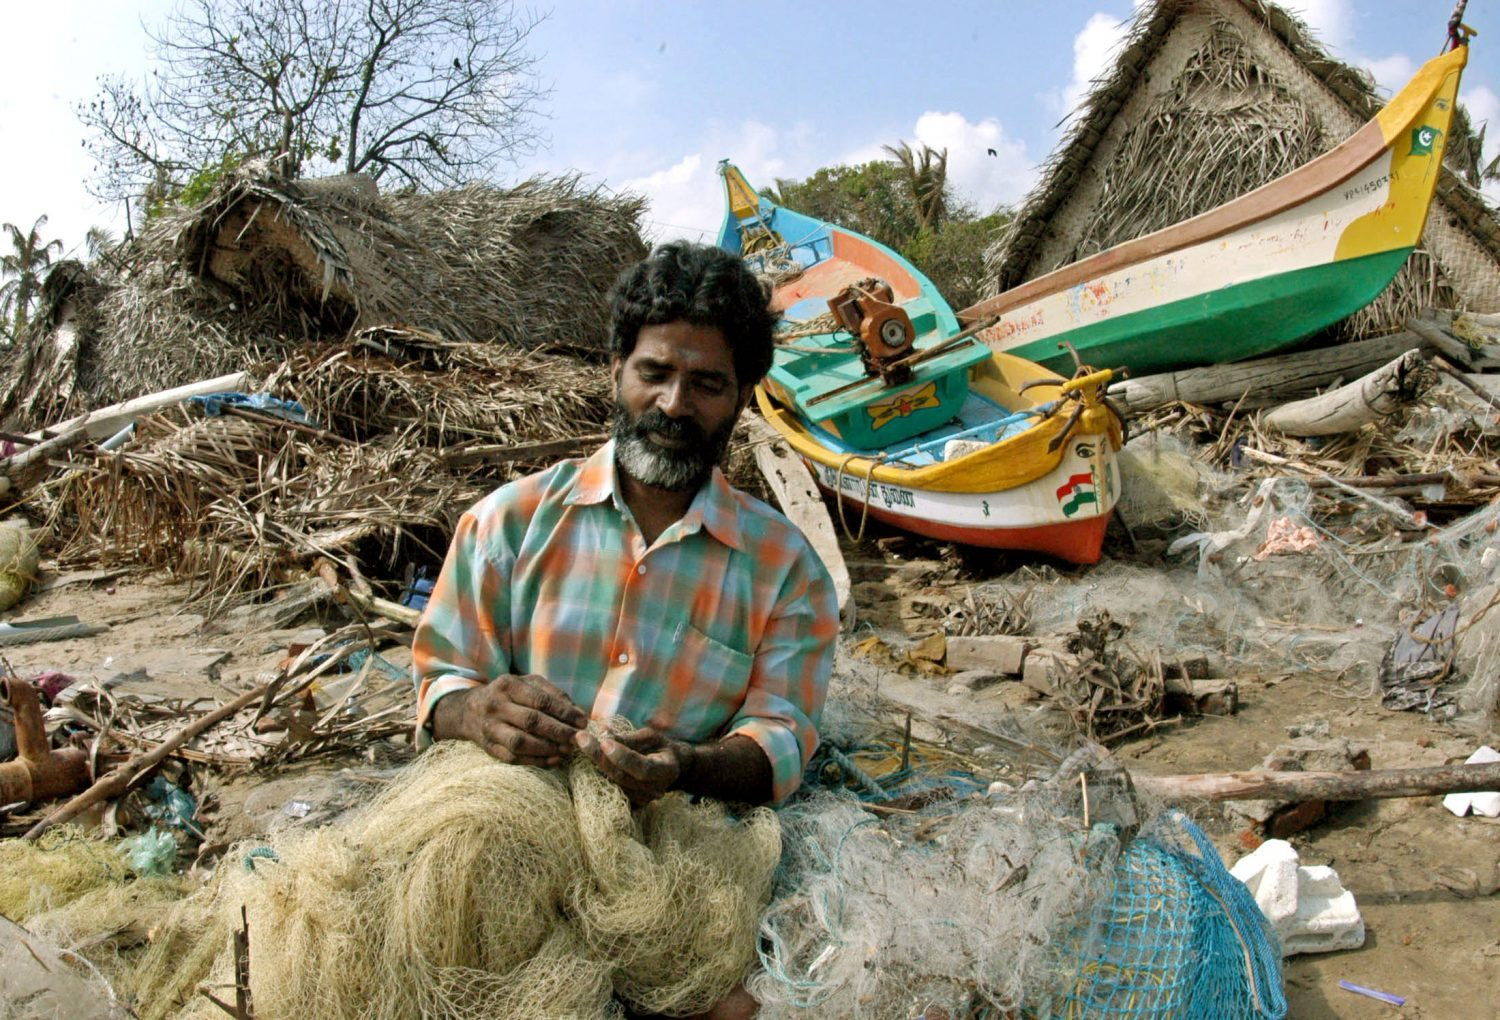 An Indian fisherman sews his fishing net outside his damaged hut after a tsunami hit the southern Indian city of Madras December 27, 2004. Soldiers searched for bodies in treetops, families wept over the dead laid on beaches and rescuers scoured coral isles for missing tourists as Asia counted the cost on Monday of a tidal wave triggered by an earthquake that killed thousands. - RTXN4CU